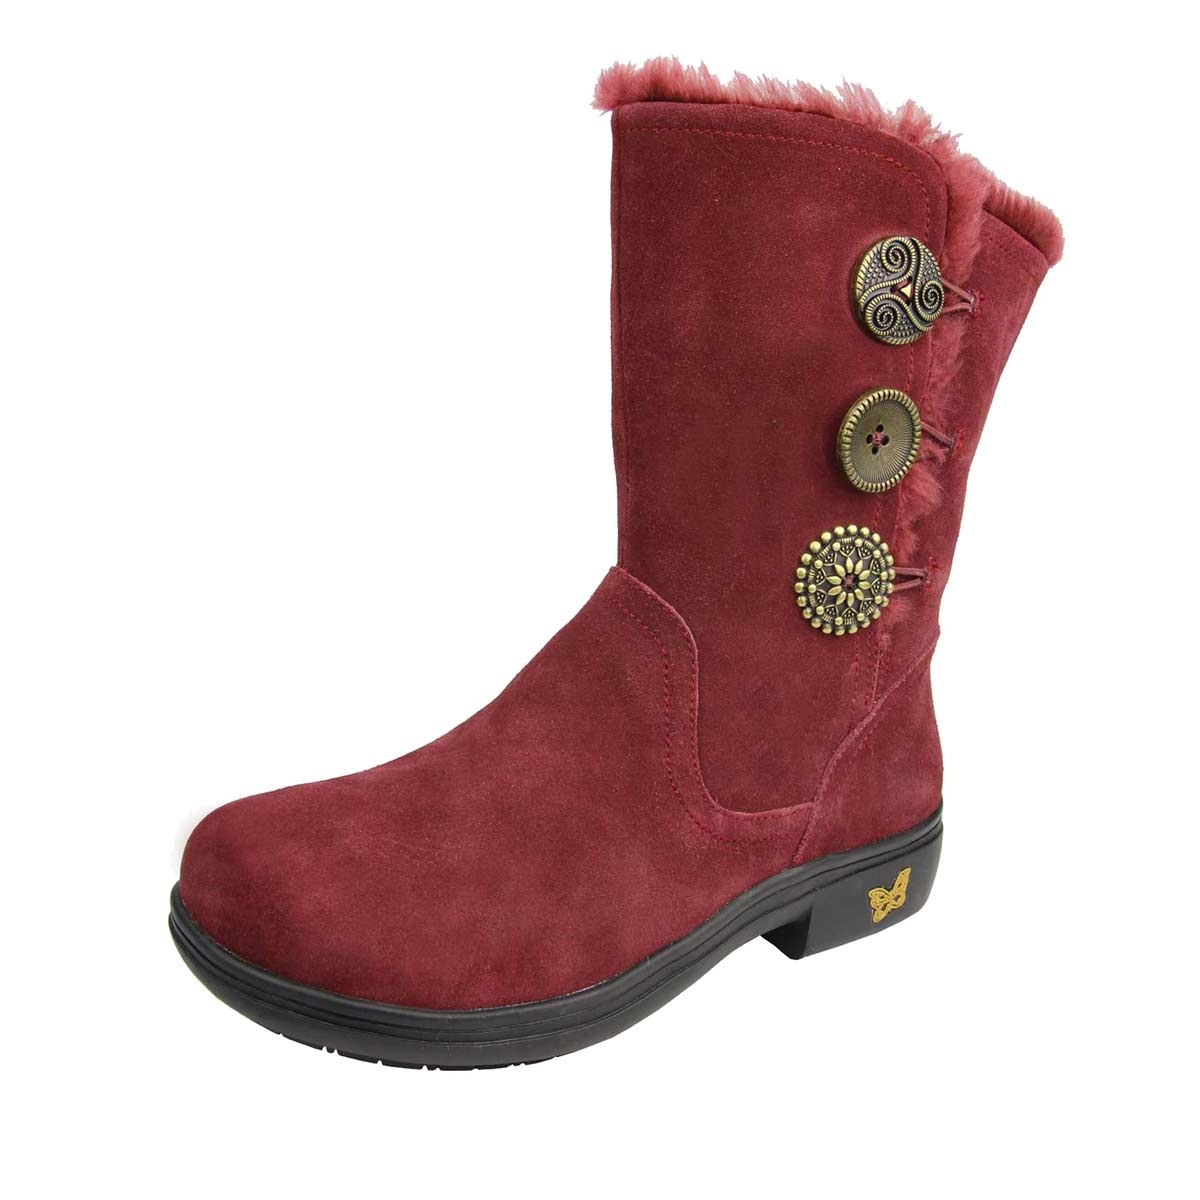 Alegria Shoes Nanook Red Licorice Boots Free Shipping